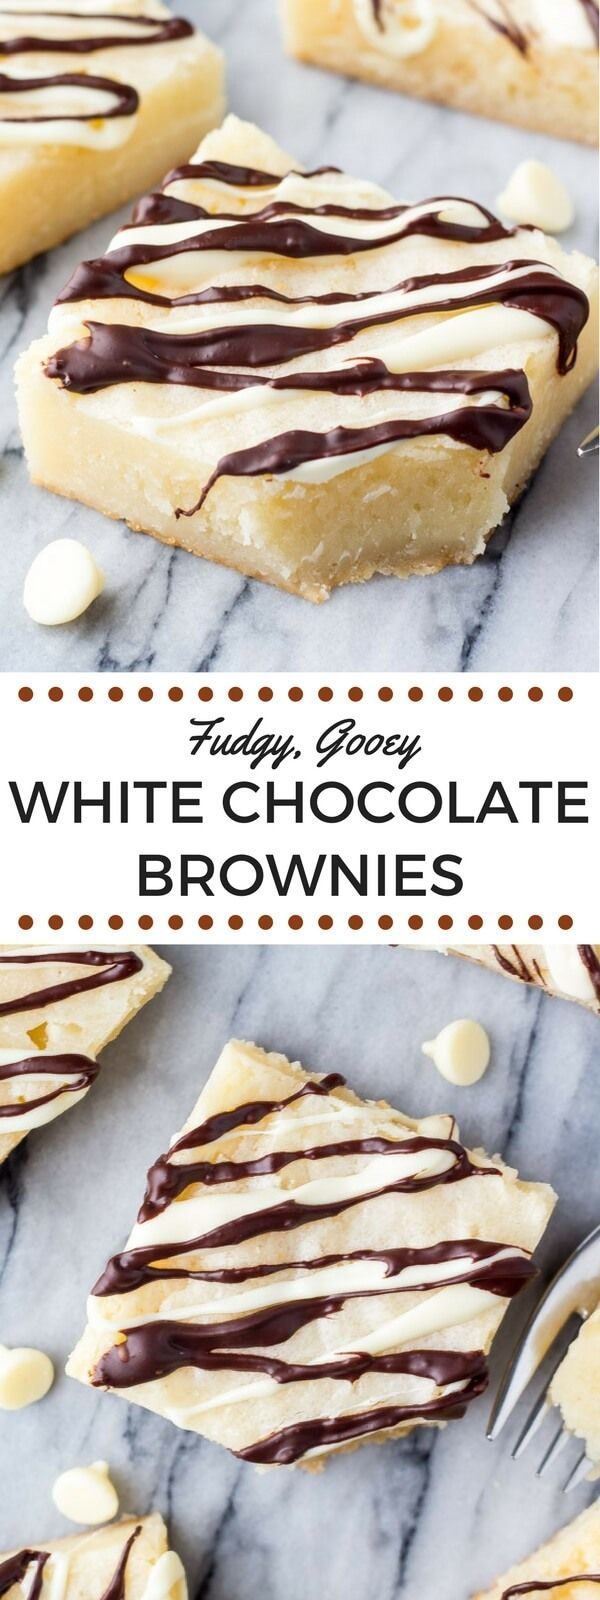 fudgy, gooey white chocolate brownies